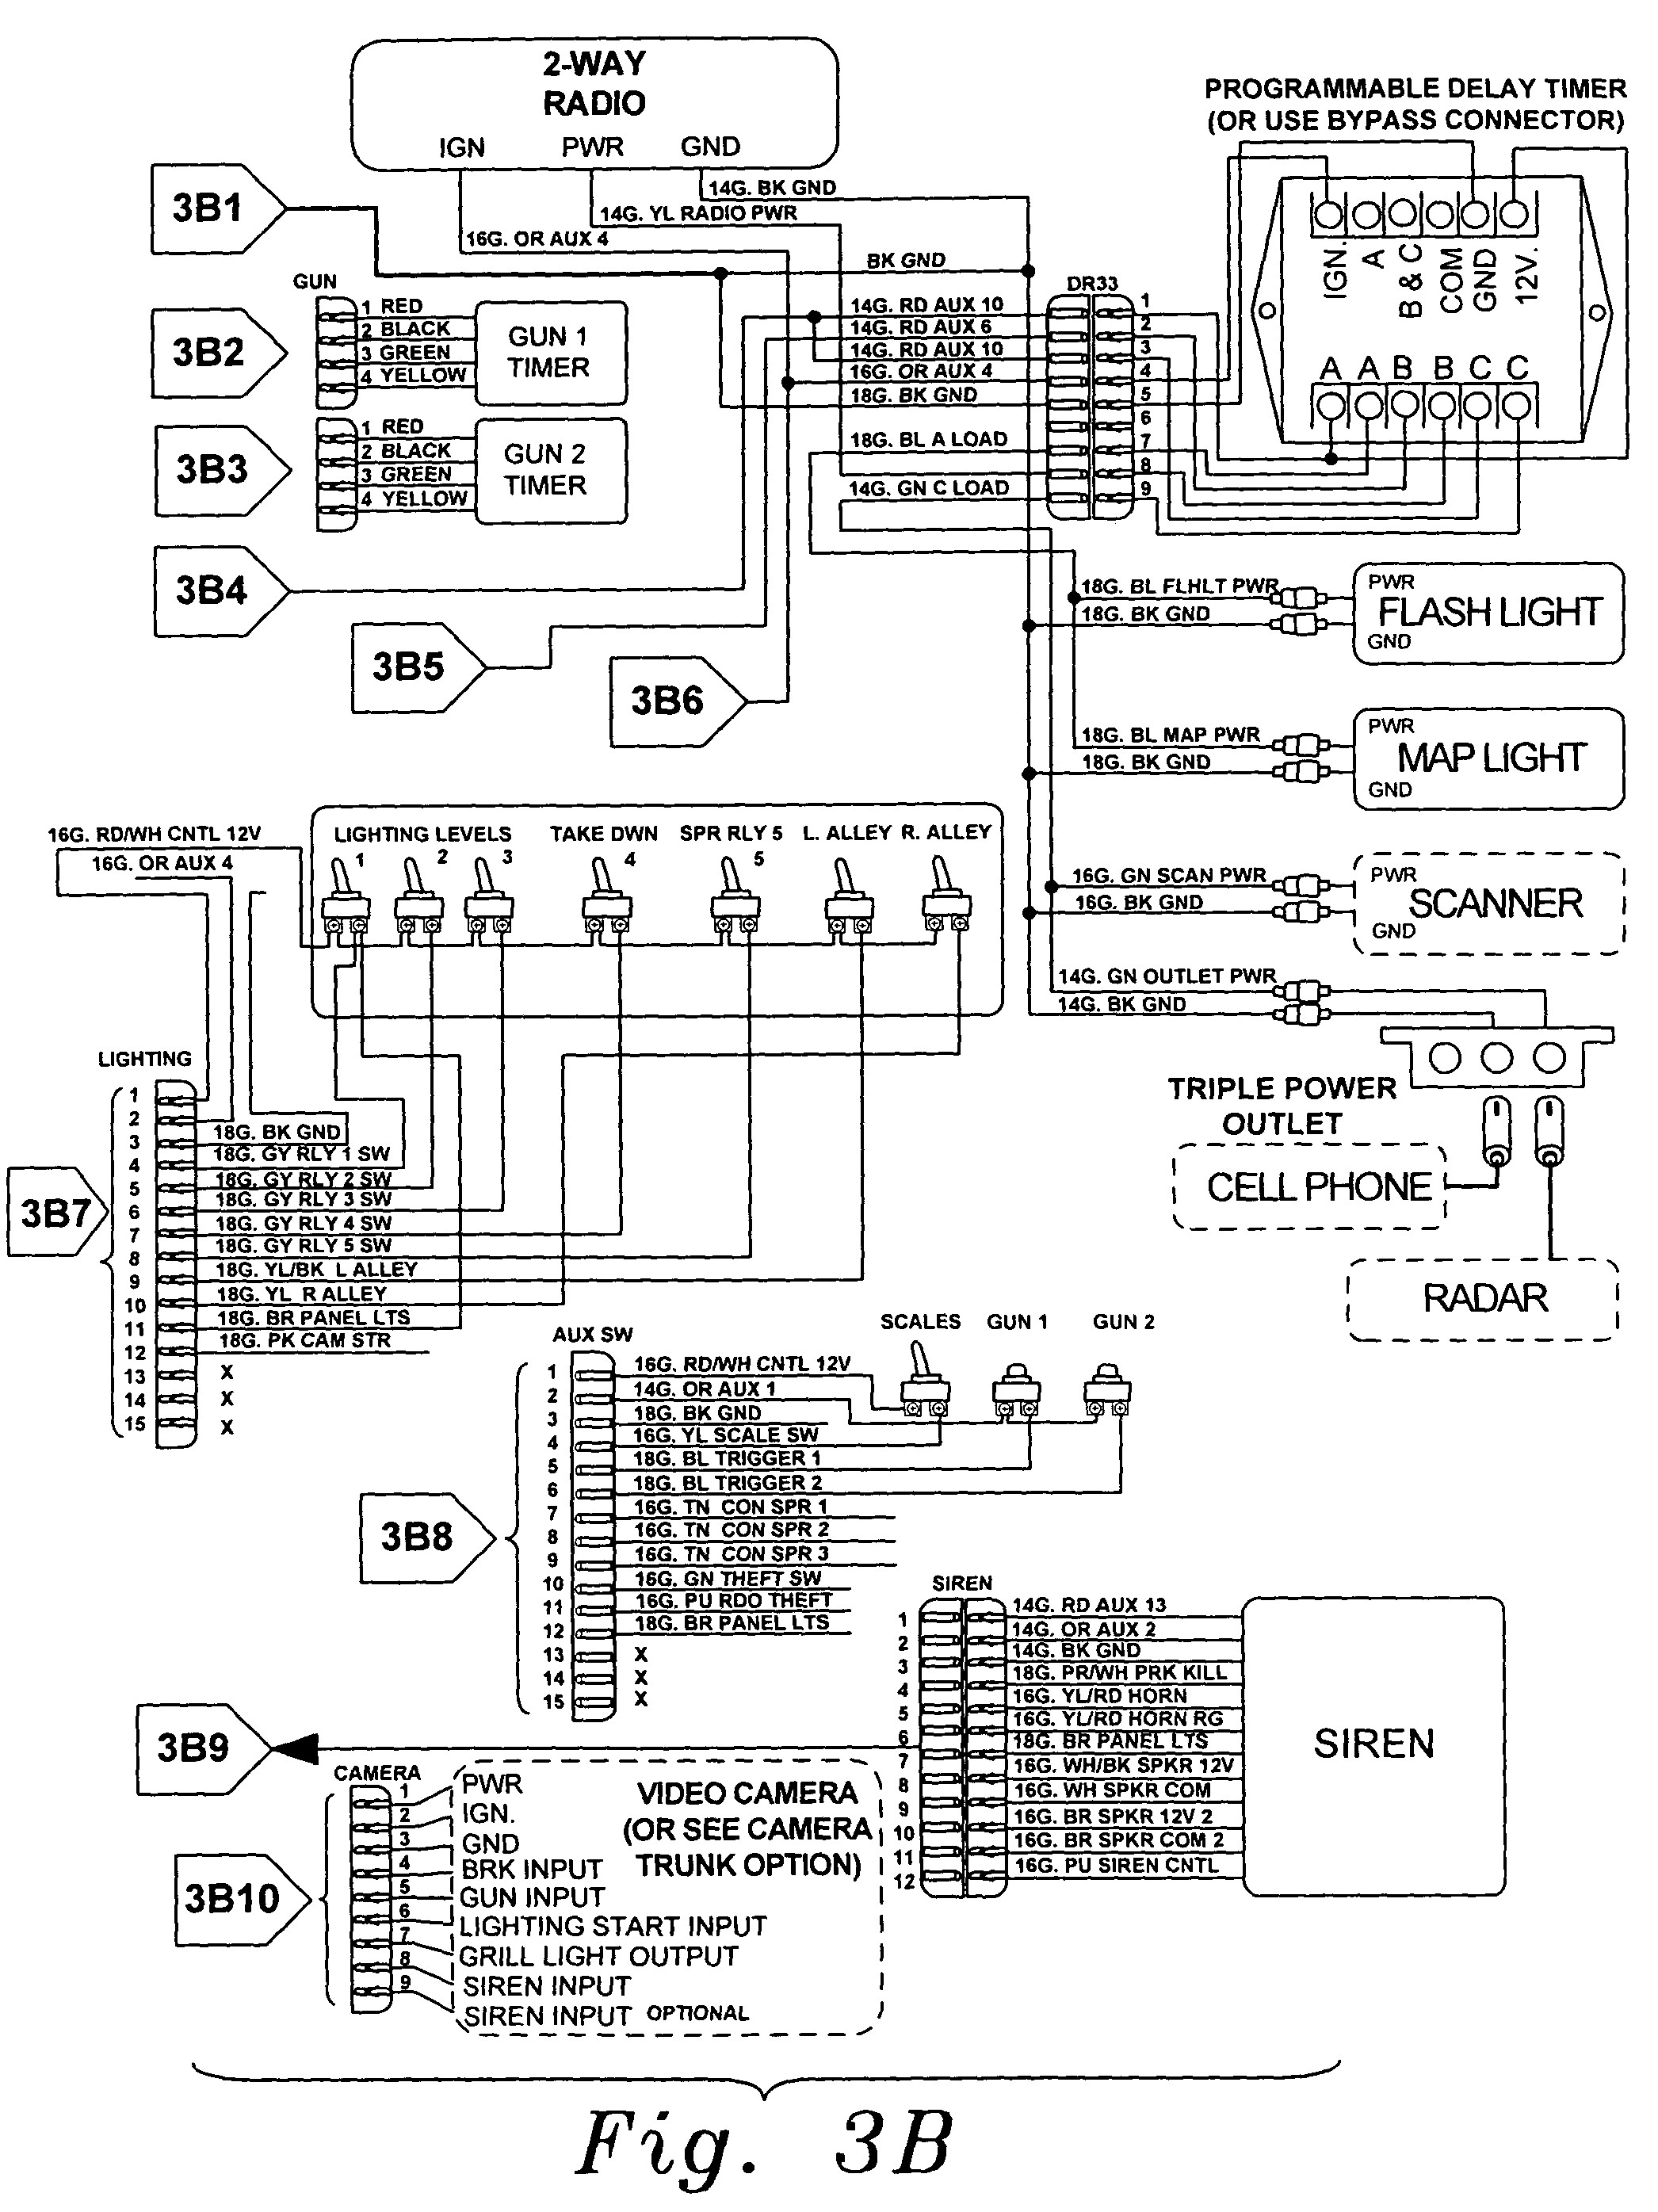 Galls Siren Wiring Diagram